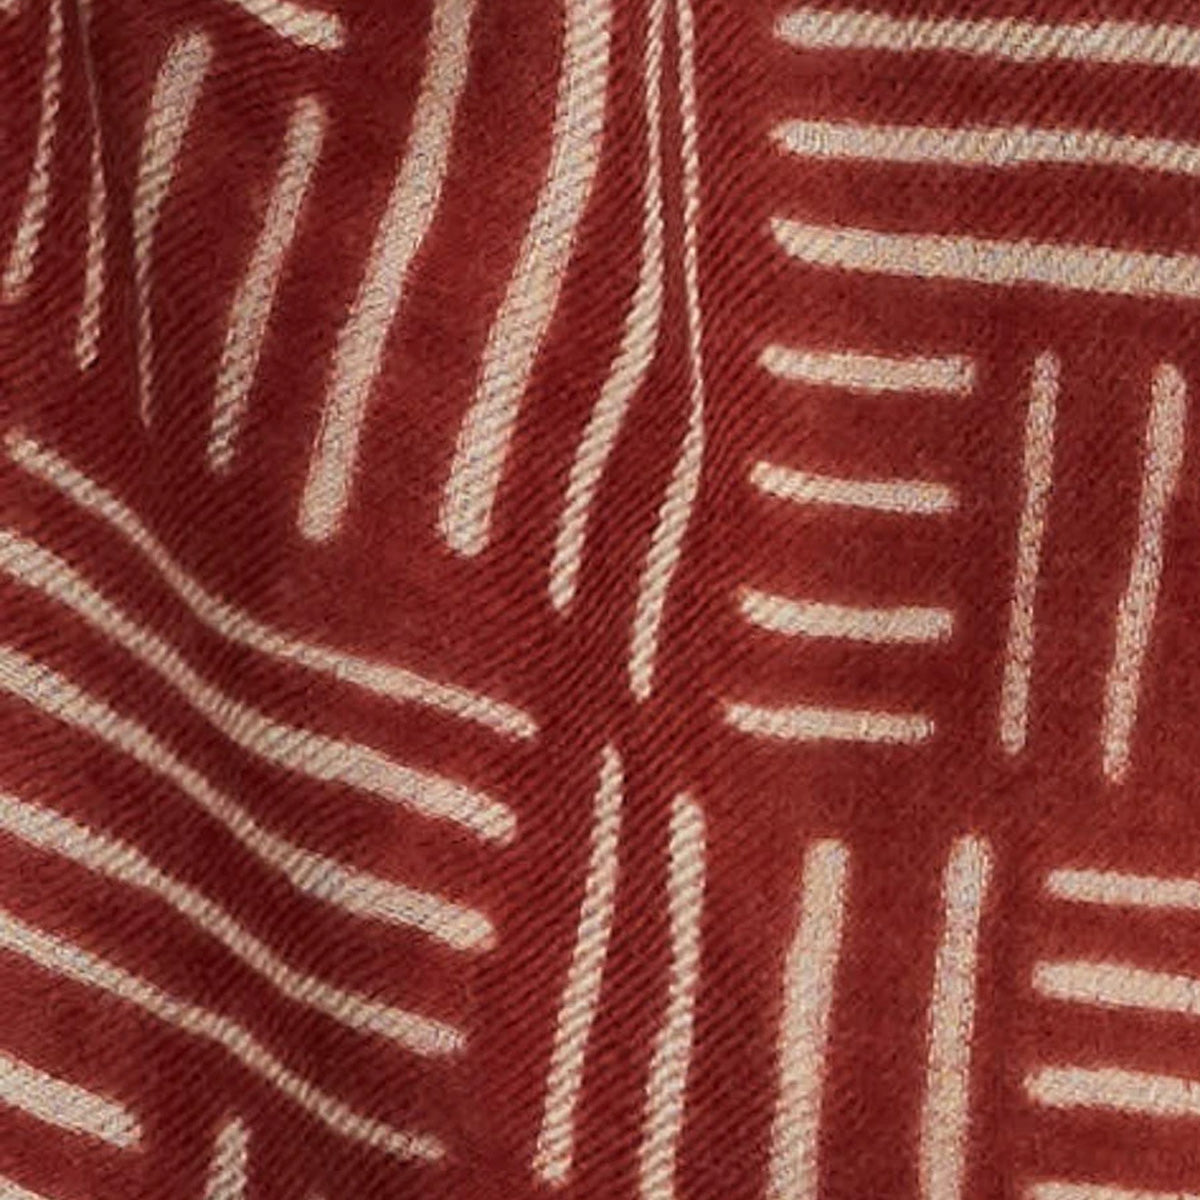 Fabric Detail - Model Wearing a Lyon - 100% Fine Merino Wool Scarf - Brick Red & Beige - Sold by Chic & Basta